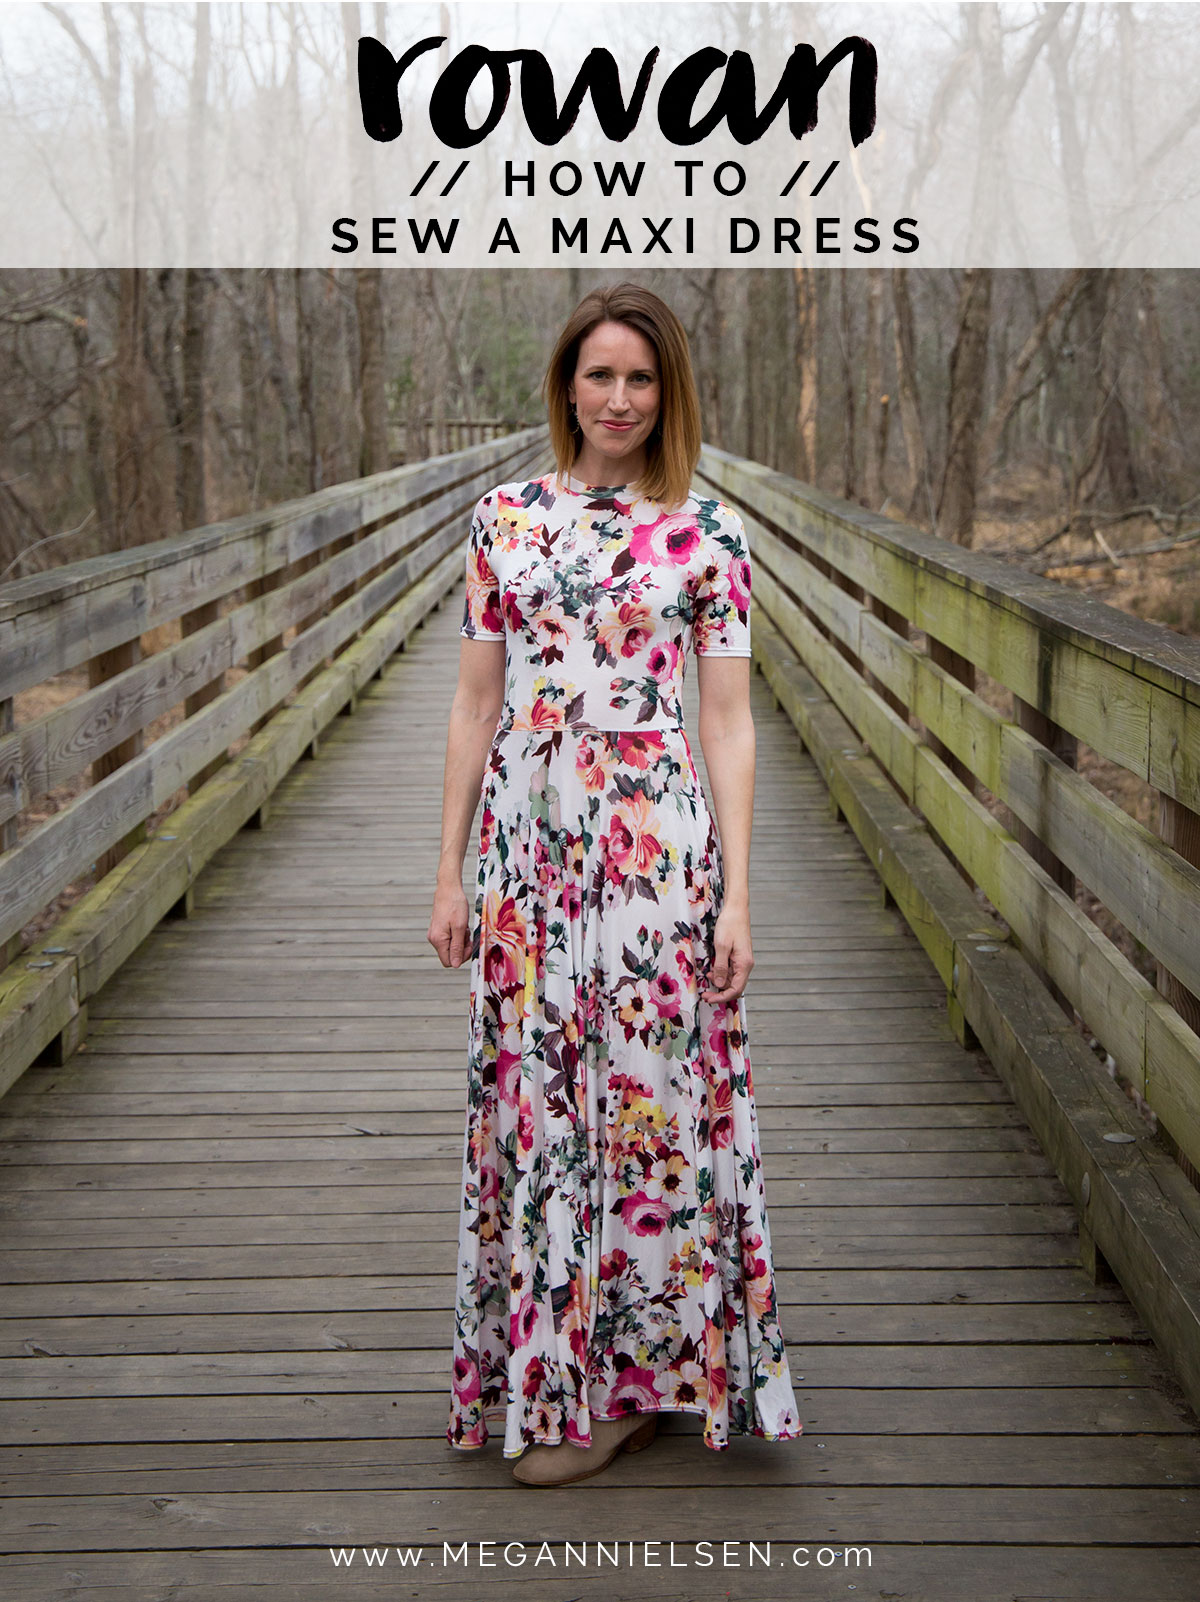 How To Sew A Knit Maxi Dress Using The Rowan Sewing